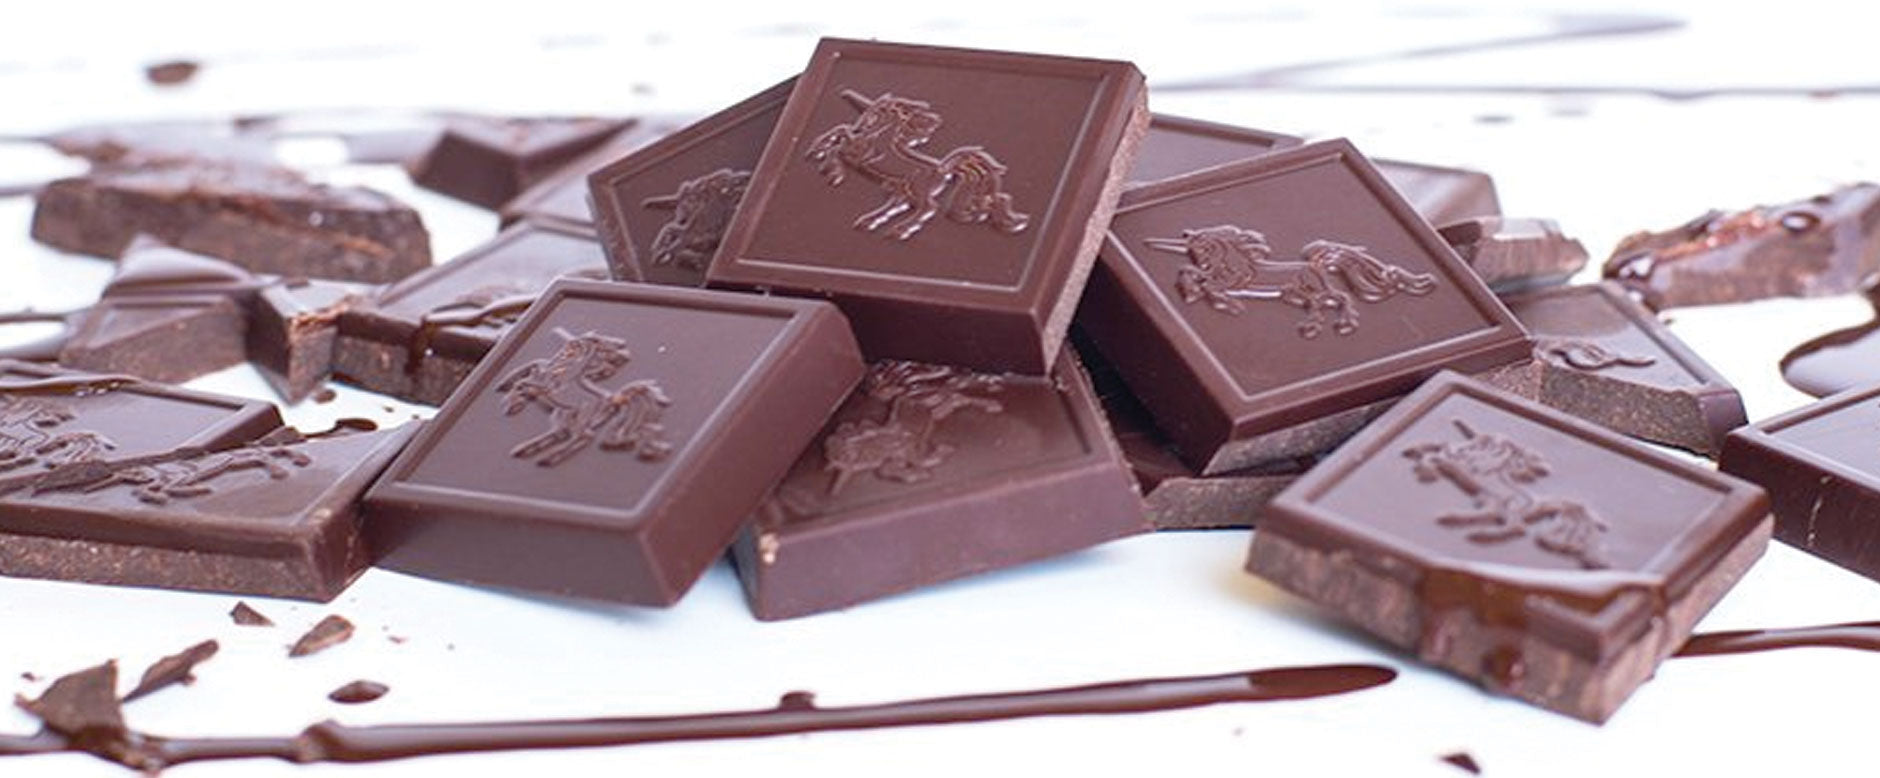 Addictive Wellness - Artisanal vegan chocolate and superherb elixir blends. Pay with Bitcoin